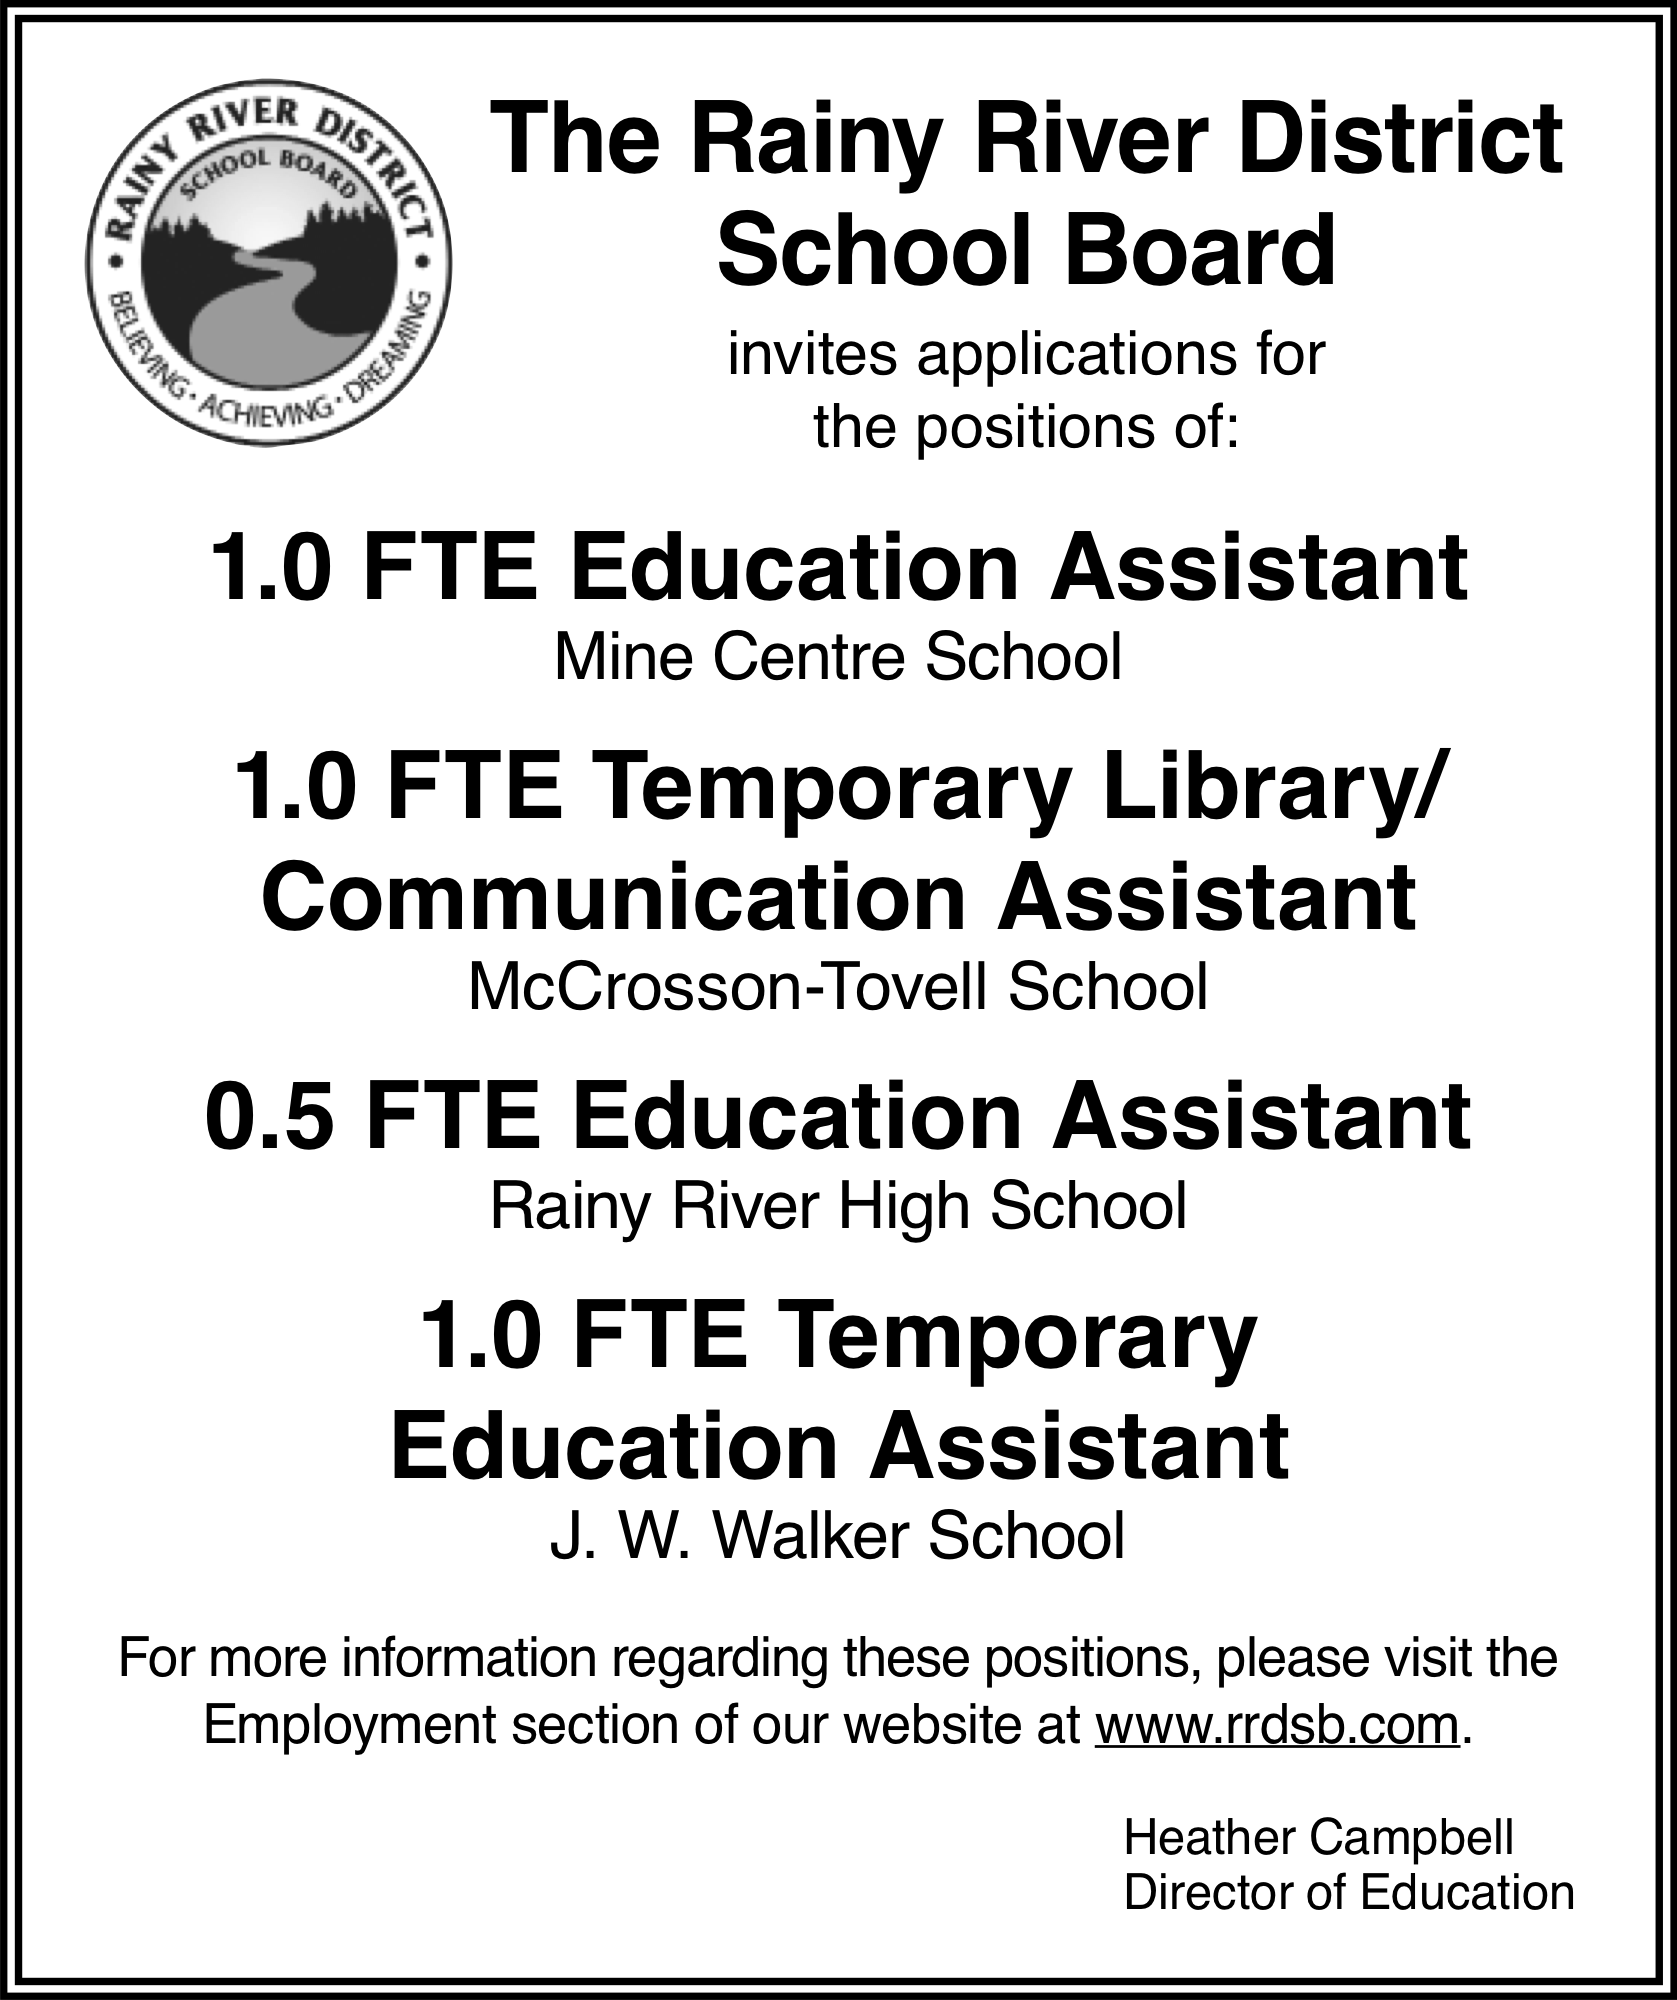 Education Assistant, Temporary Library/Communication Assistant, Education Assistant, Temporary Education Assistant